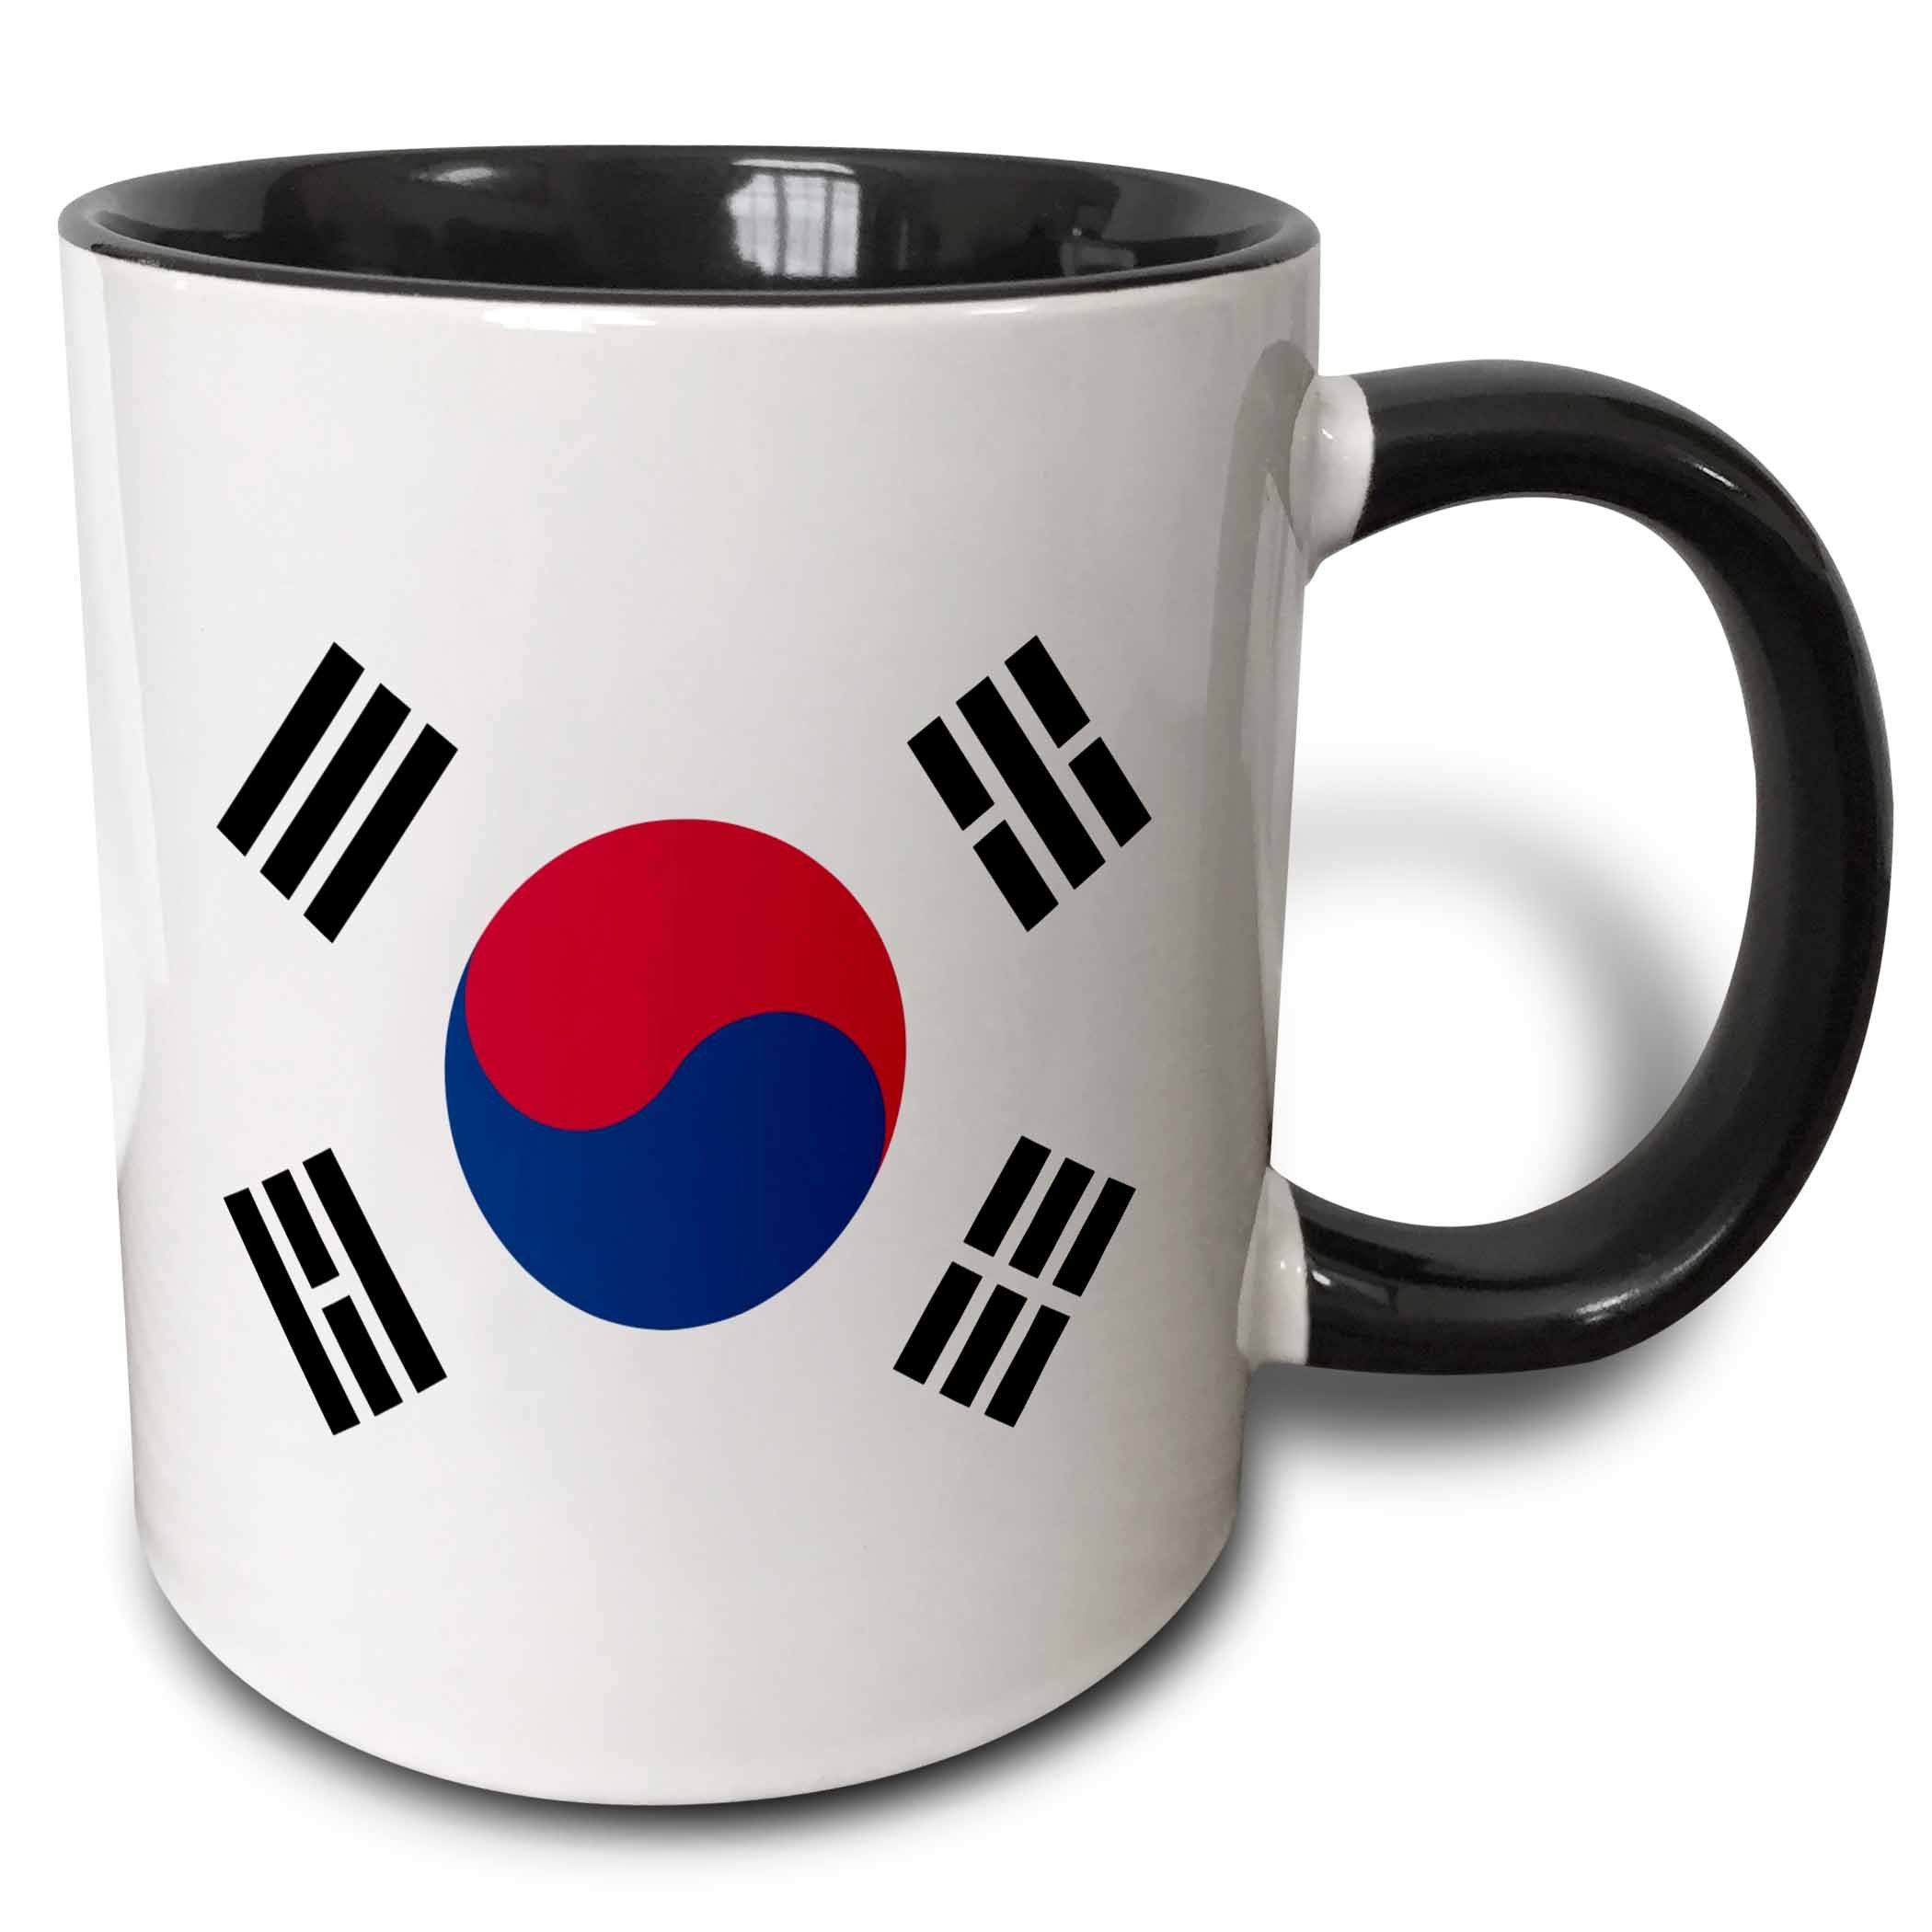 3dRose (mug_158435_4) Flag of South Korea - Korean white red blue taegeuk circle black trigrams - Taiji Yinyang Taegeukgi - Two Tone Black Mug, 11oz